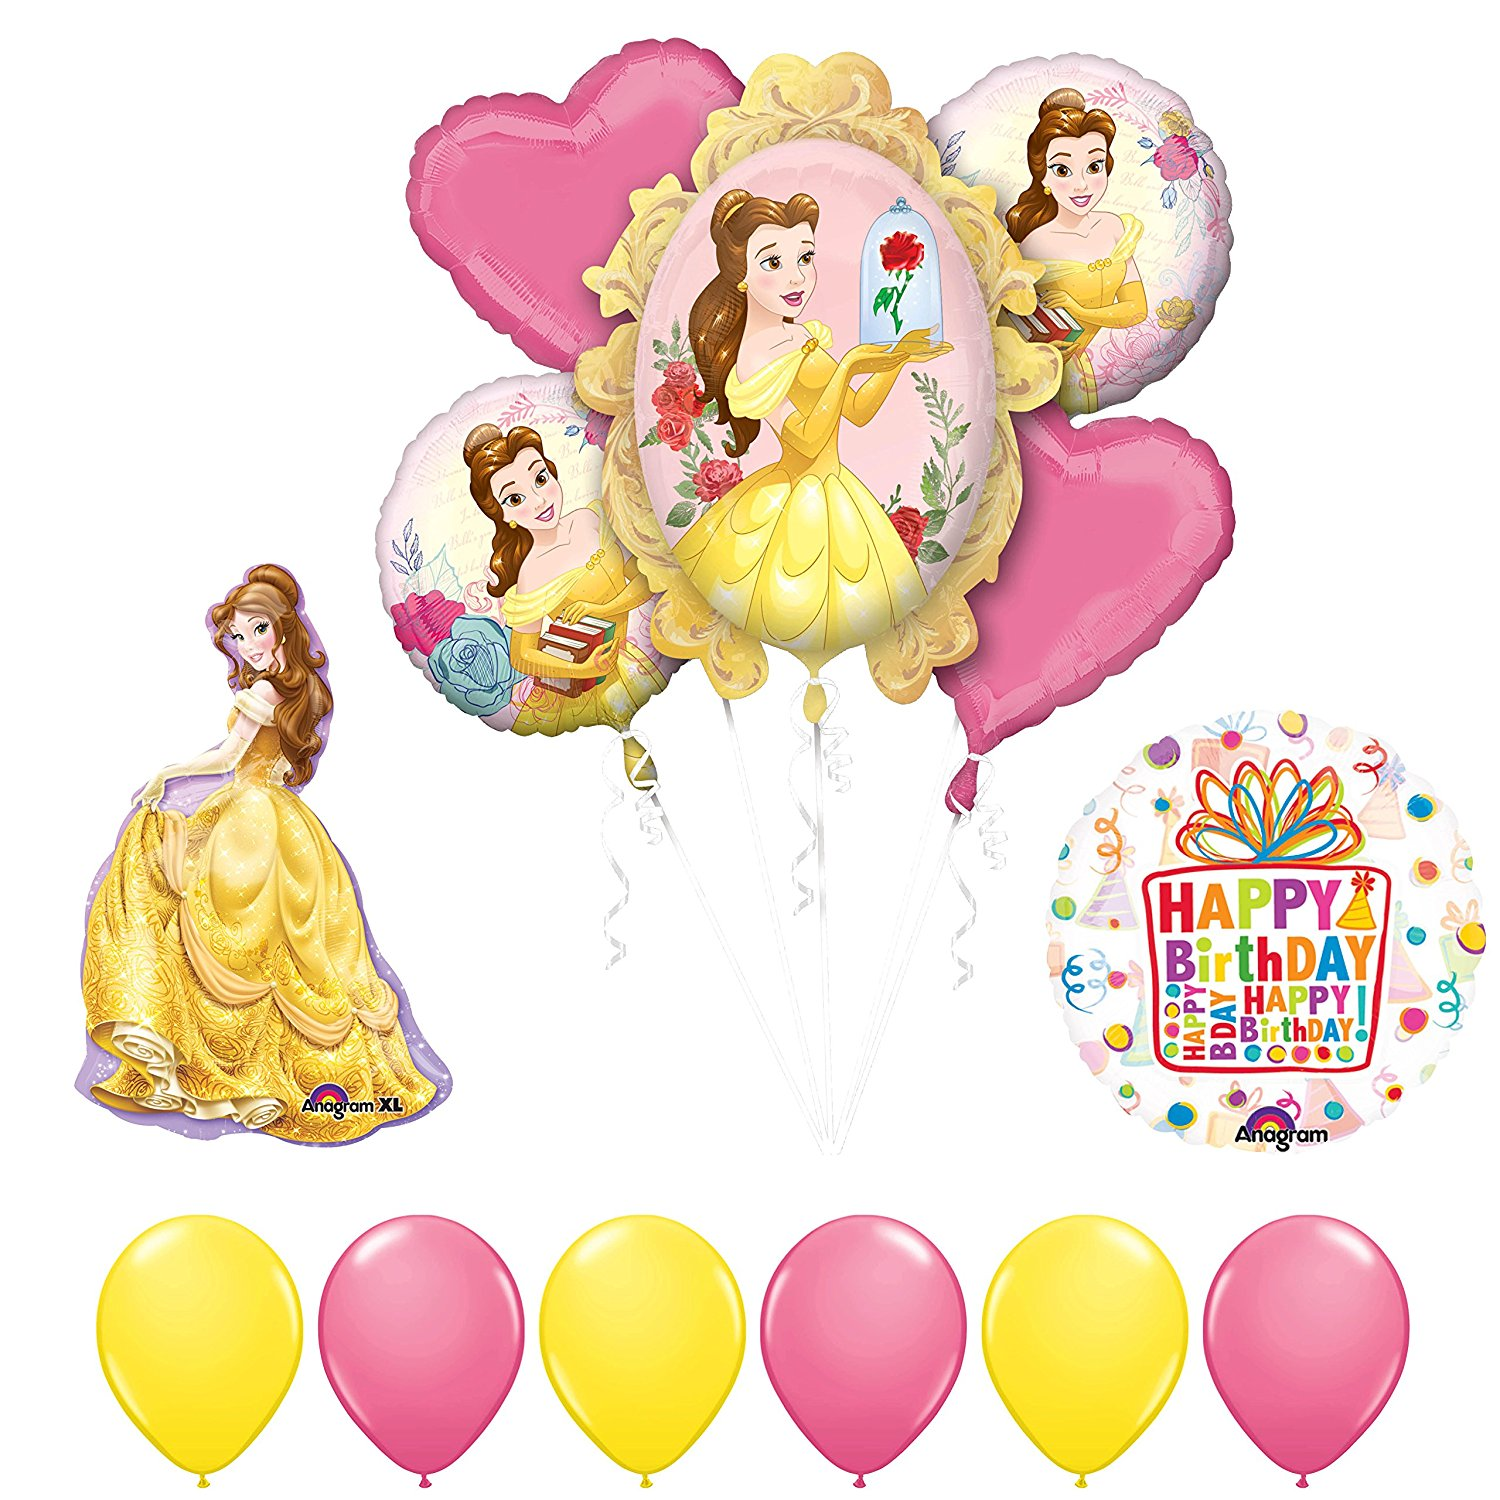 From the invitations and decorations to the cake and activities, we have tons of ideas to throw one really cute and fun Beauty and the Beast party!